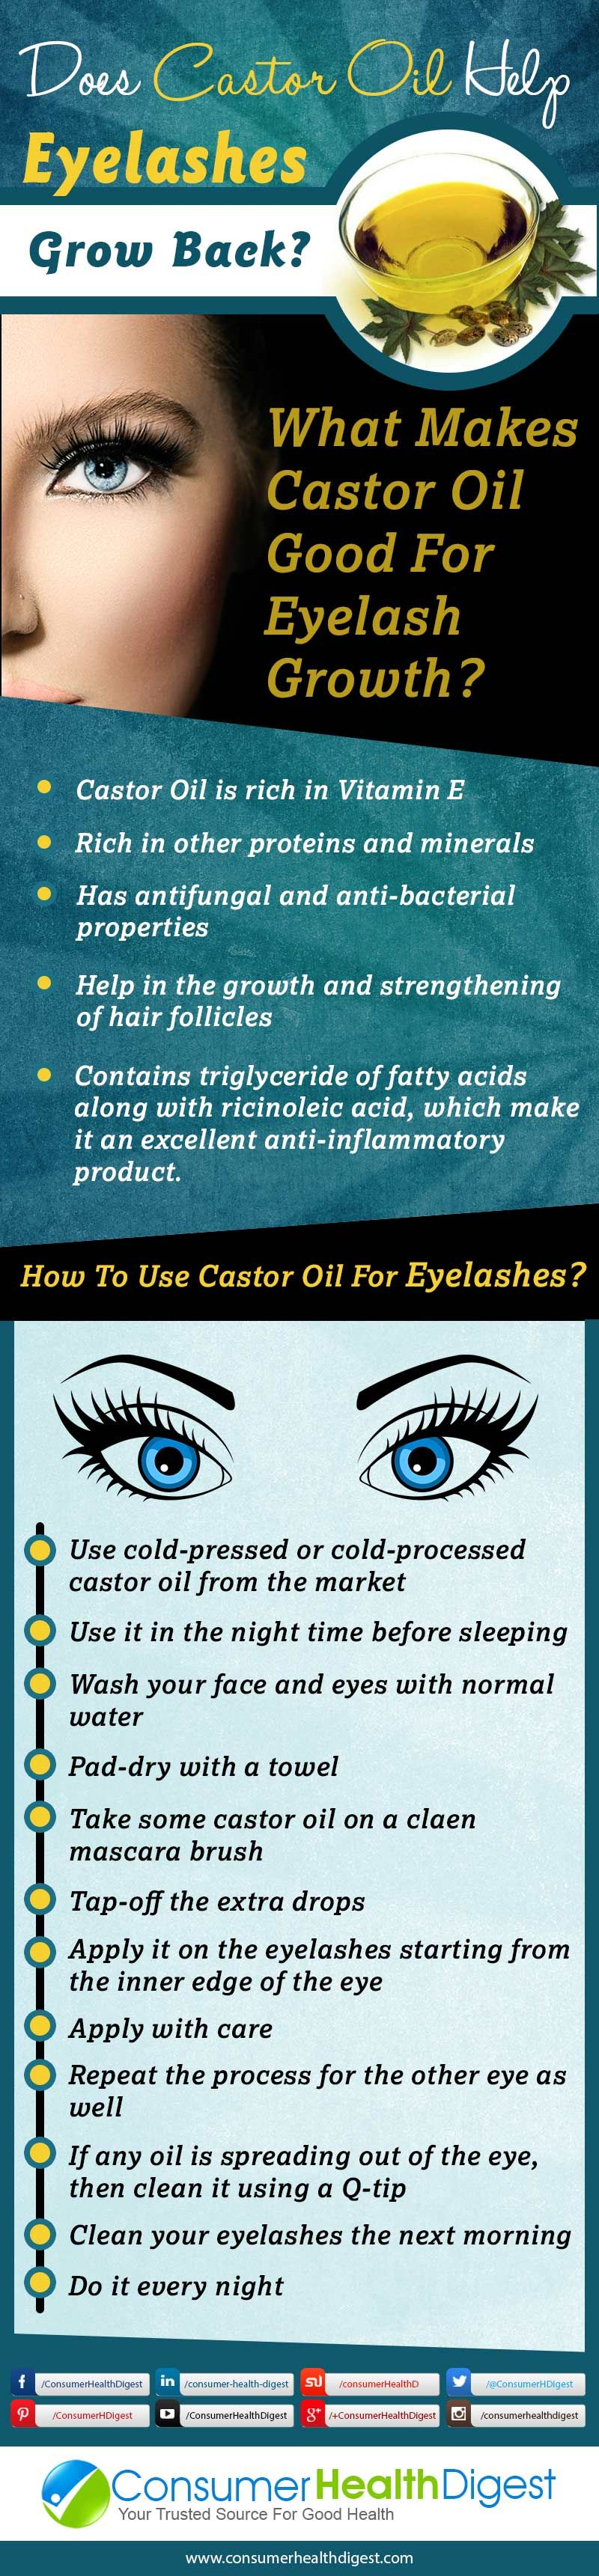 Using Castor Oil To Grow Eyelashes Natural In 2018 Pinterest